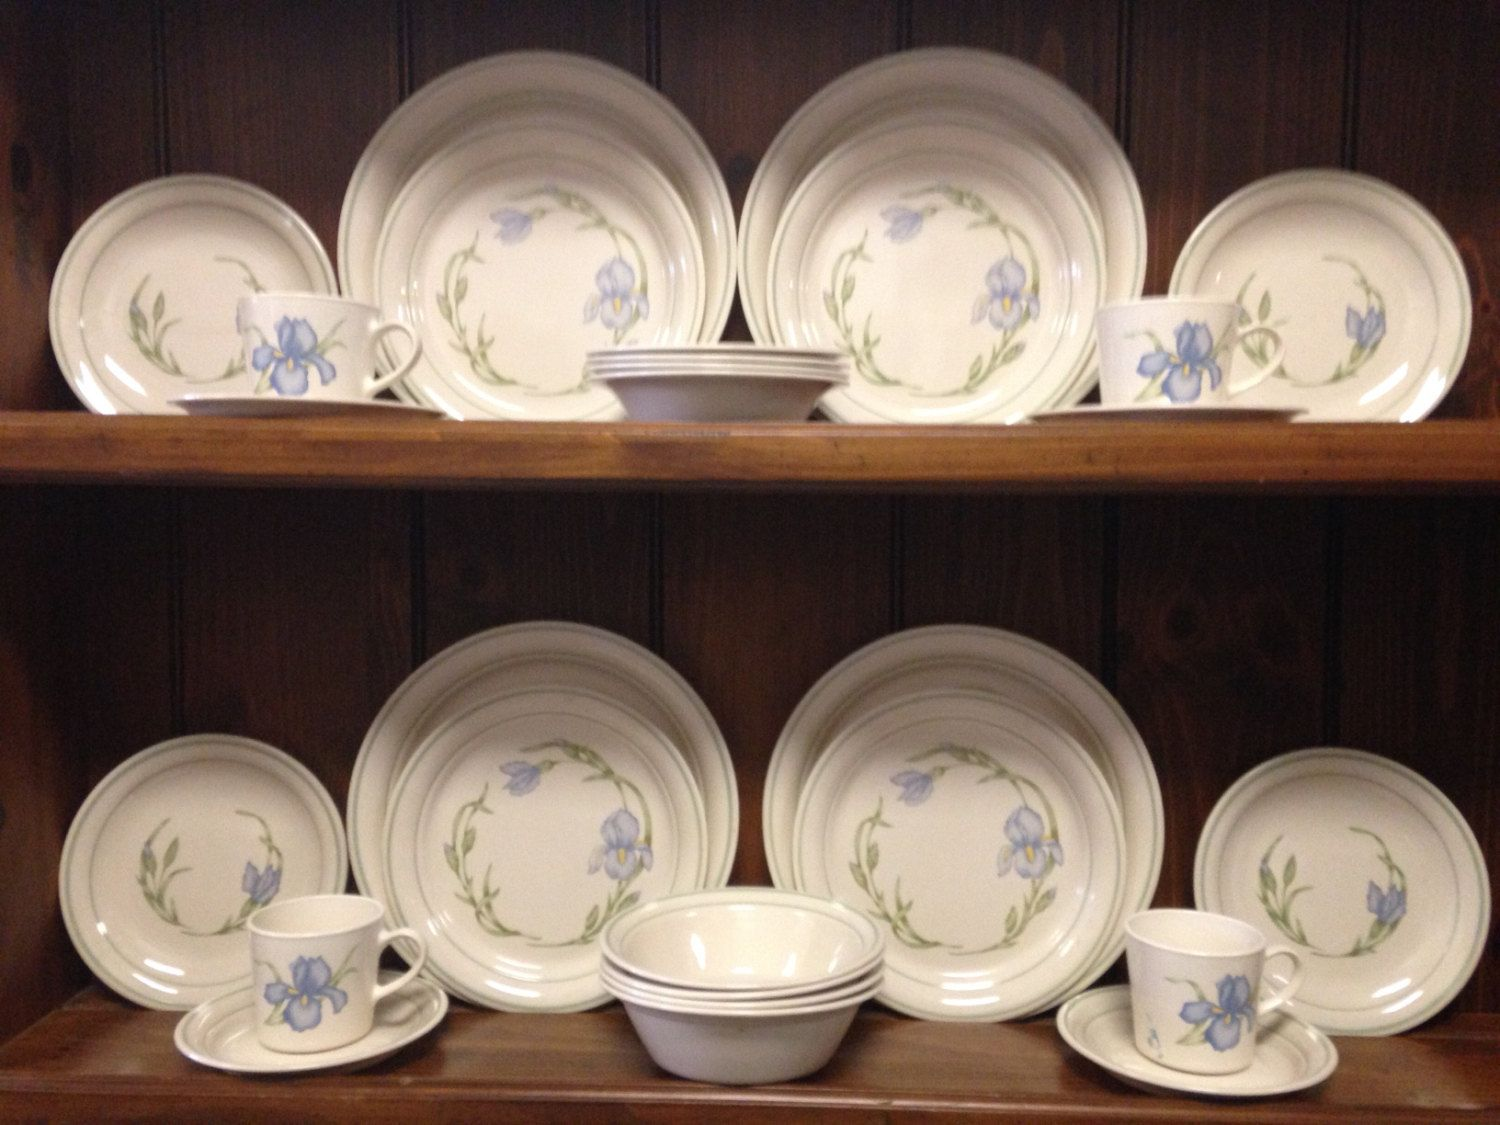 Corelle/Corning CORNERSTONE IRIS 28 Piece Dinnerware Set ~ Service for 4 by MountainMamaAntiques on & Corelle/Corning CORNERSTONE IRIS 28 Piece Dinnerware Set ~ Service ...